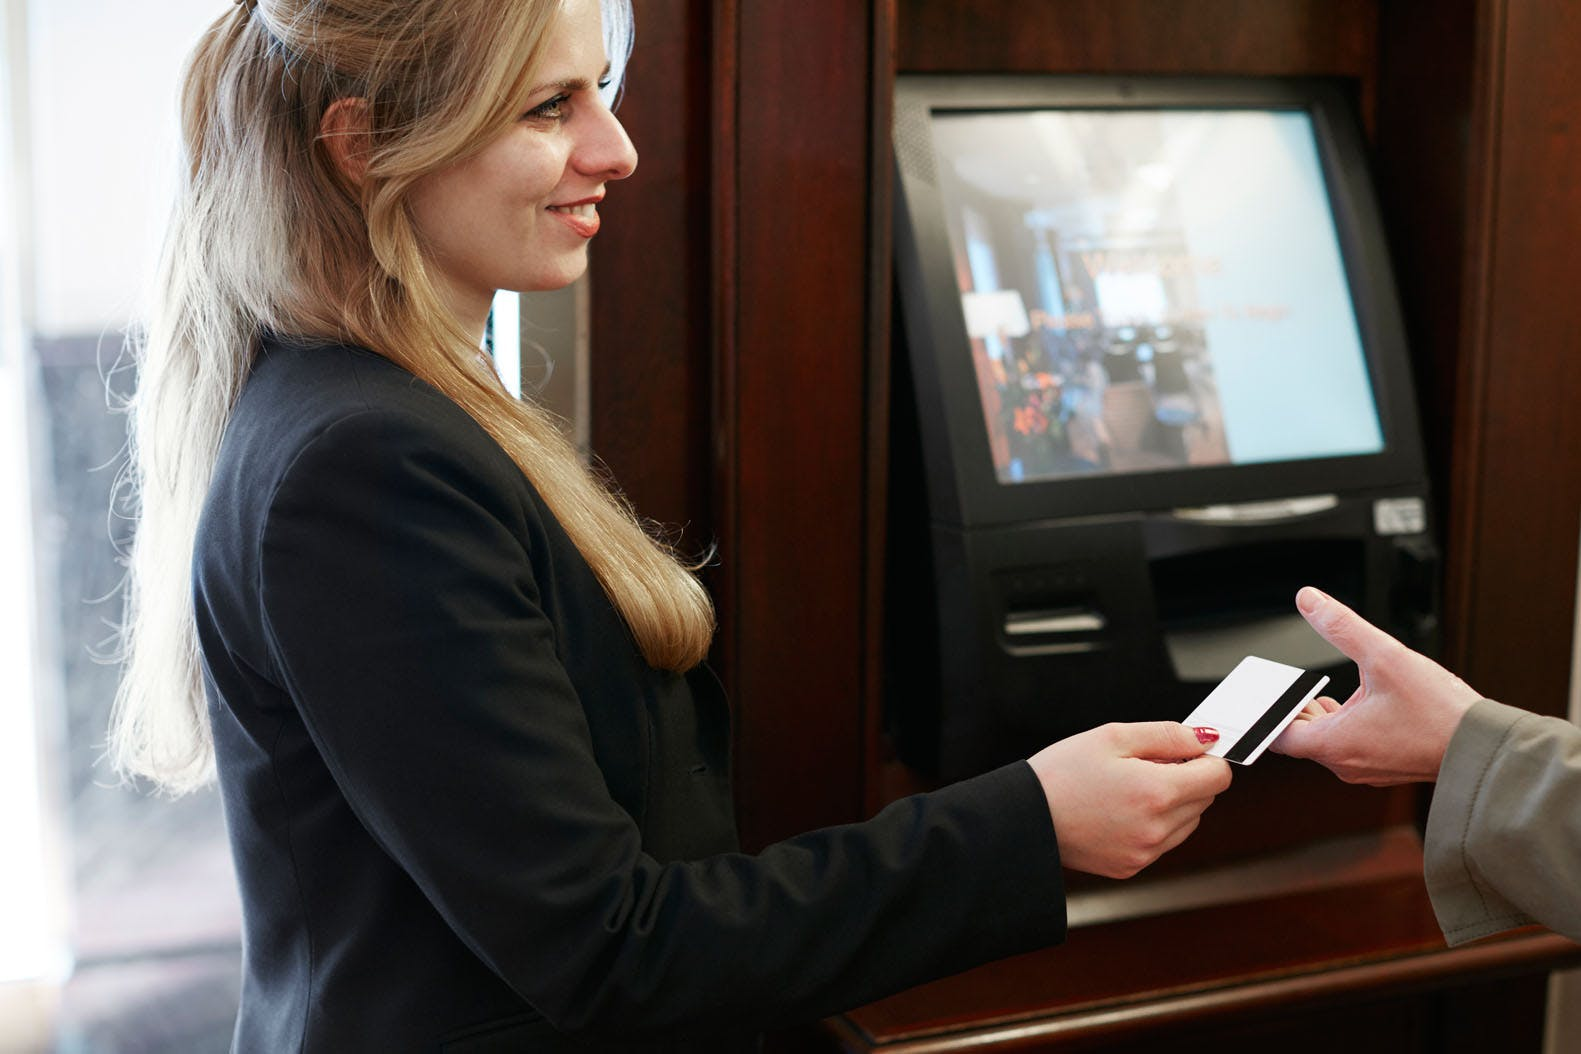 Member Service Desk and Check In Kiosk at Club Quarters Hotel in Washington DC